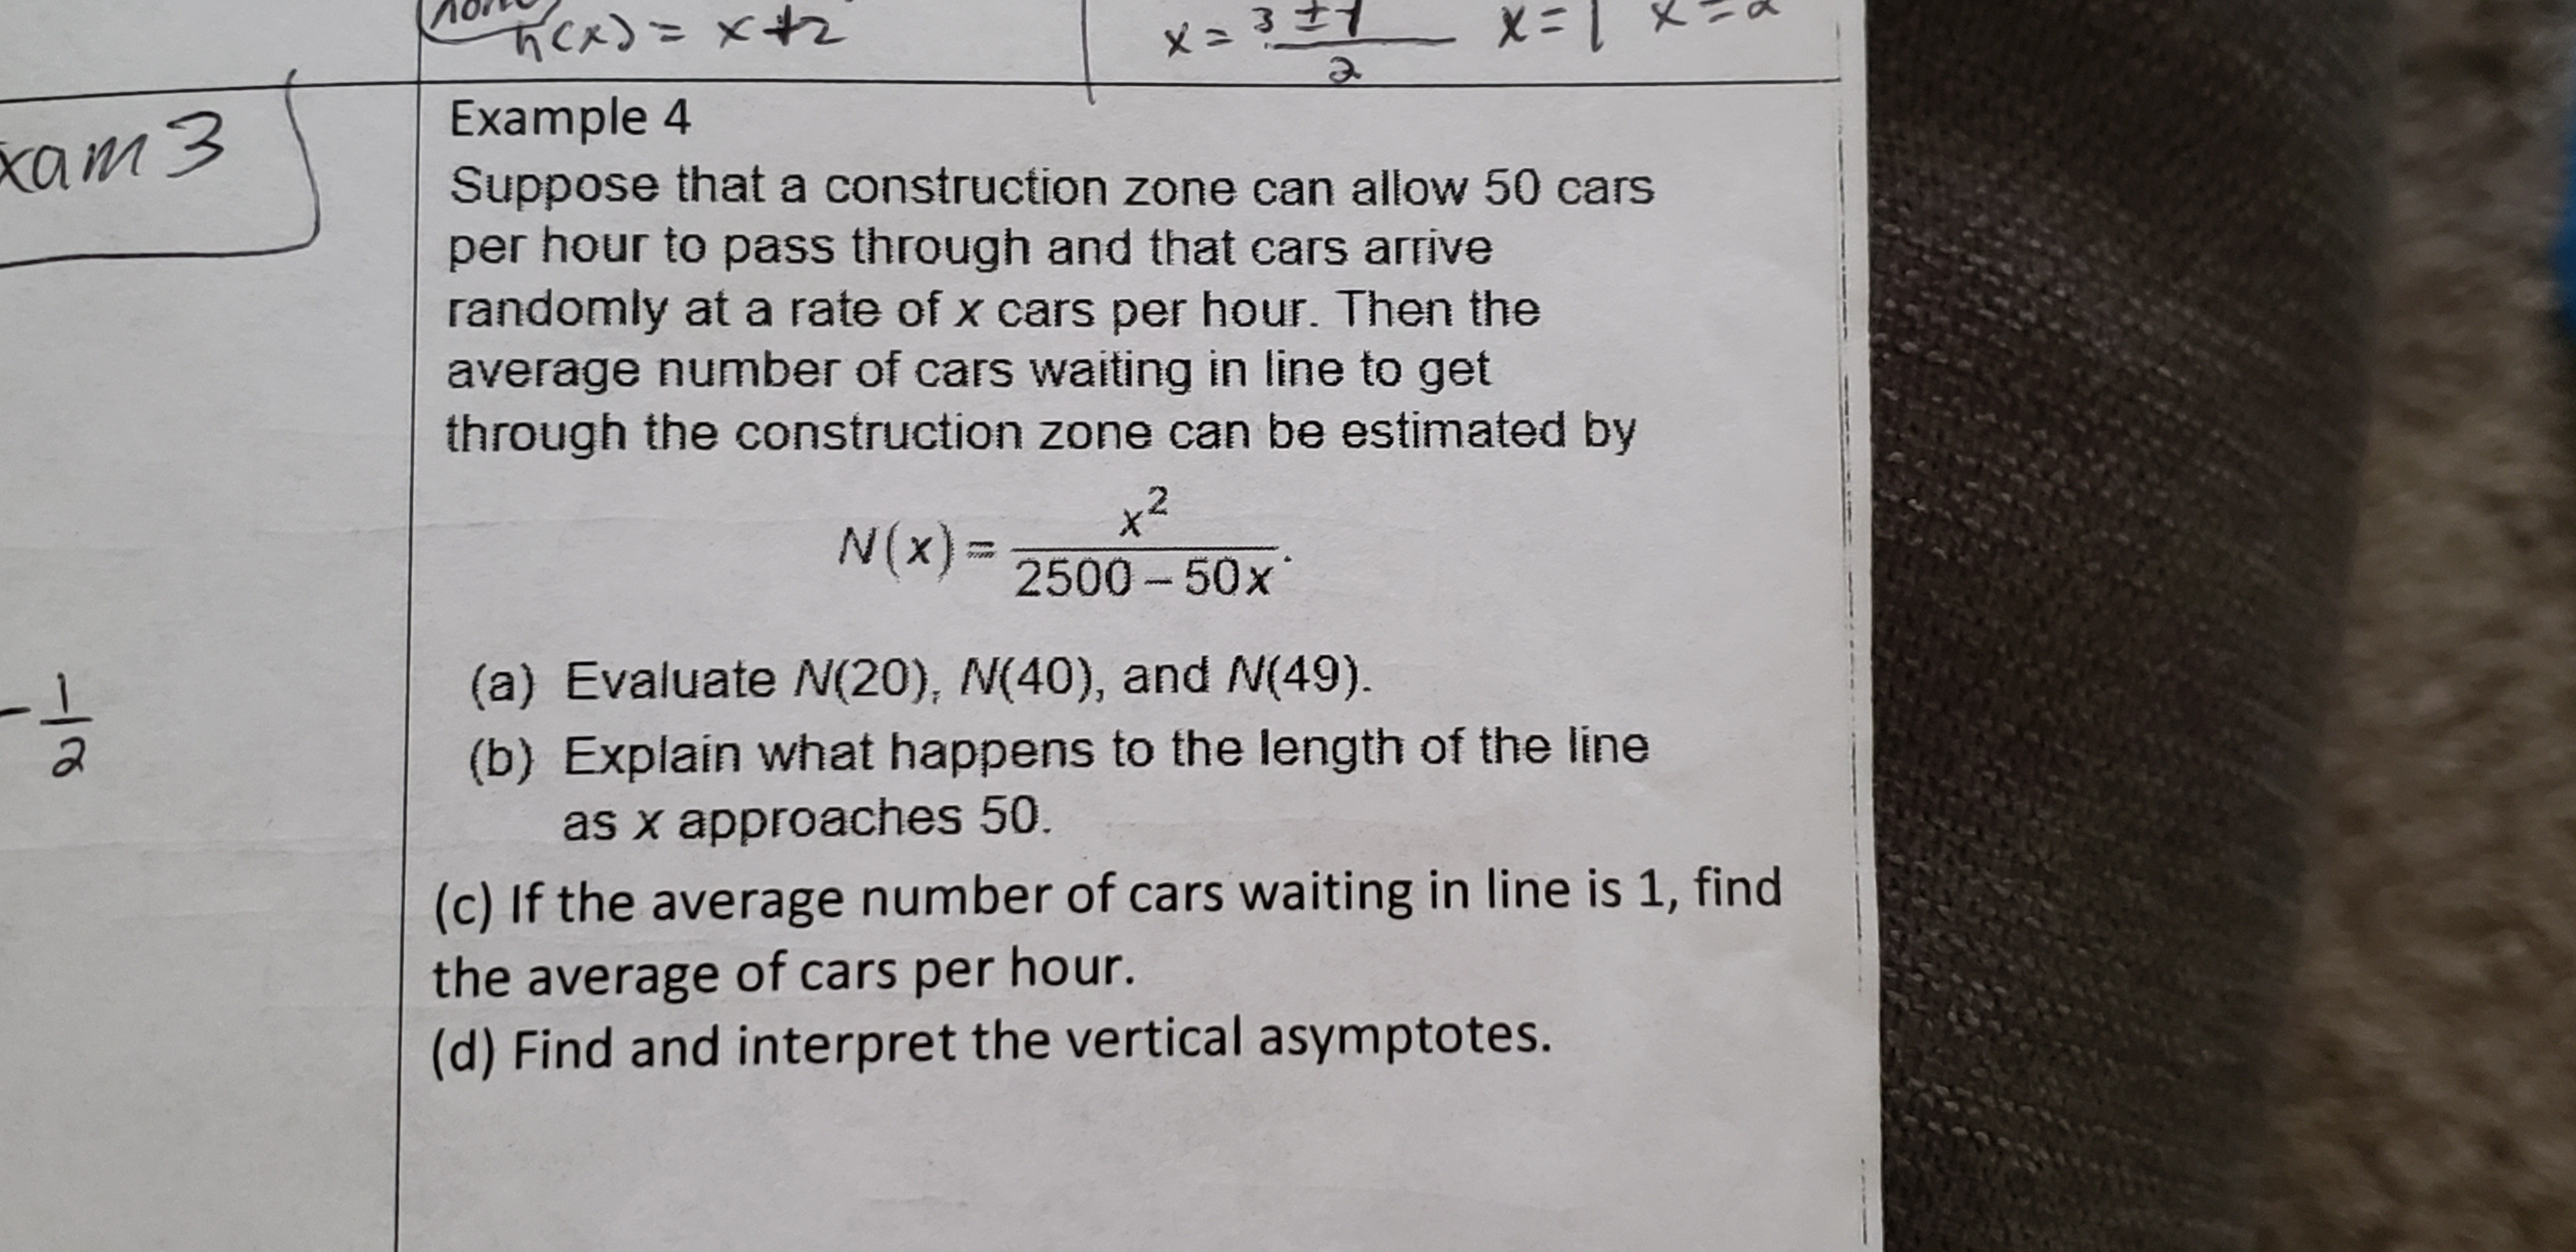 Cx)=x+2 こメ 1=x Example 4 Suppose that a construction zone can allow 50 cars per hour to pass through and that cars arrive randomly at a rate of x cars per hour. Then the average number of cars waiting in line to get through the construction zone can be estimated by xam3 x² 2500 - 50x N(x) = (a) Evaluate N(20), N(40), and N(49). (b) Explain what happens to the length of the line as x approaches 50. (c) If the average number of cars waiting in line is 1, find the average of cars per hour. (d) Find and interpret the vertical asymptotes.